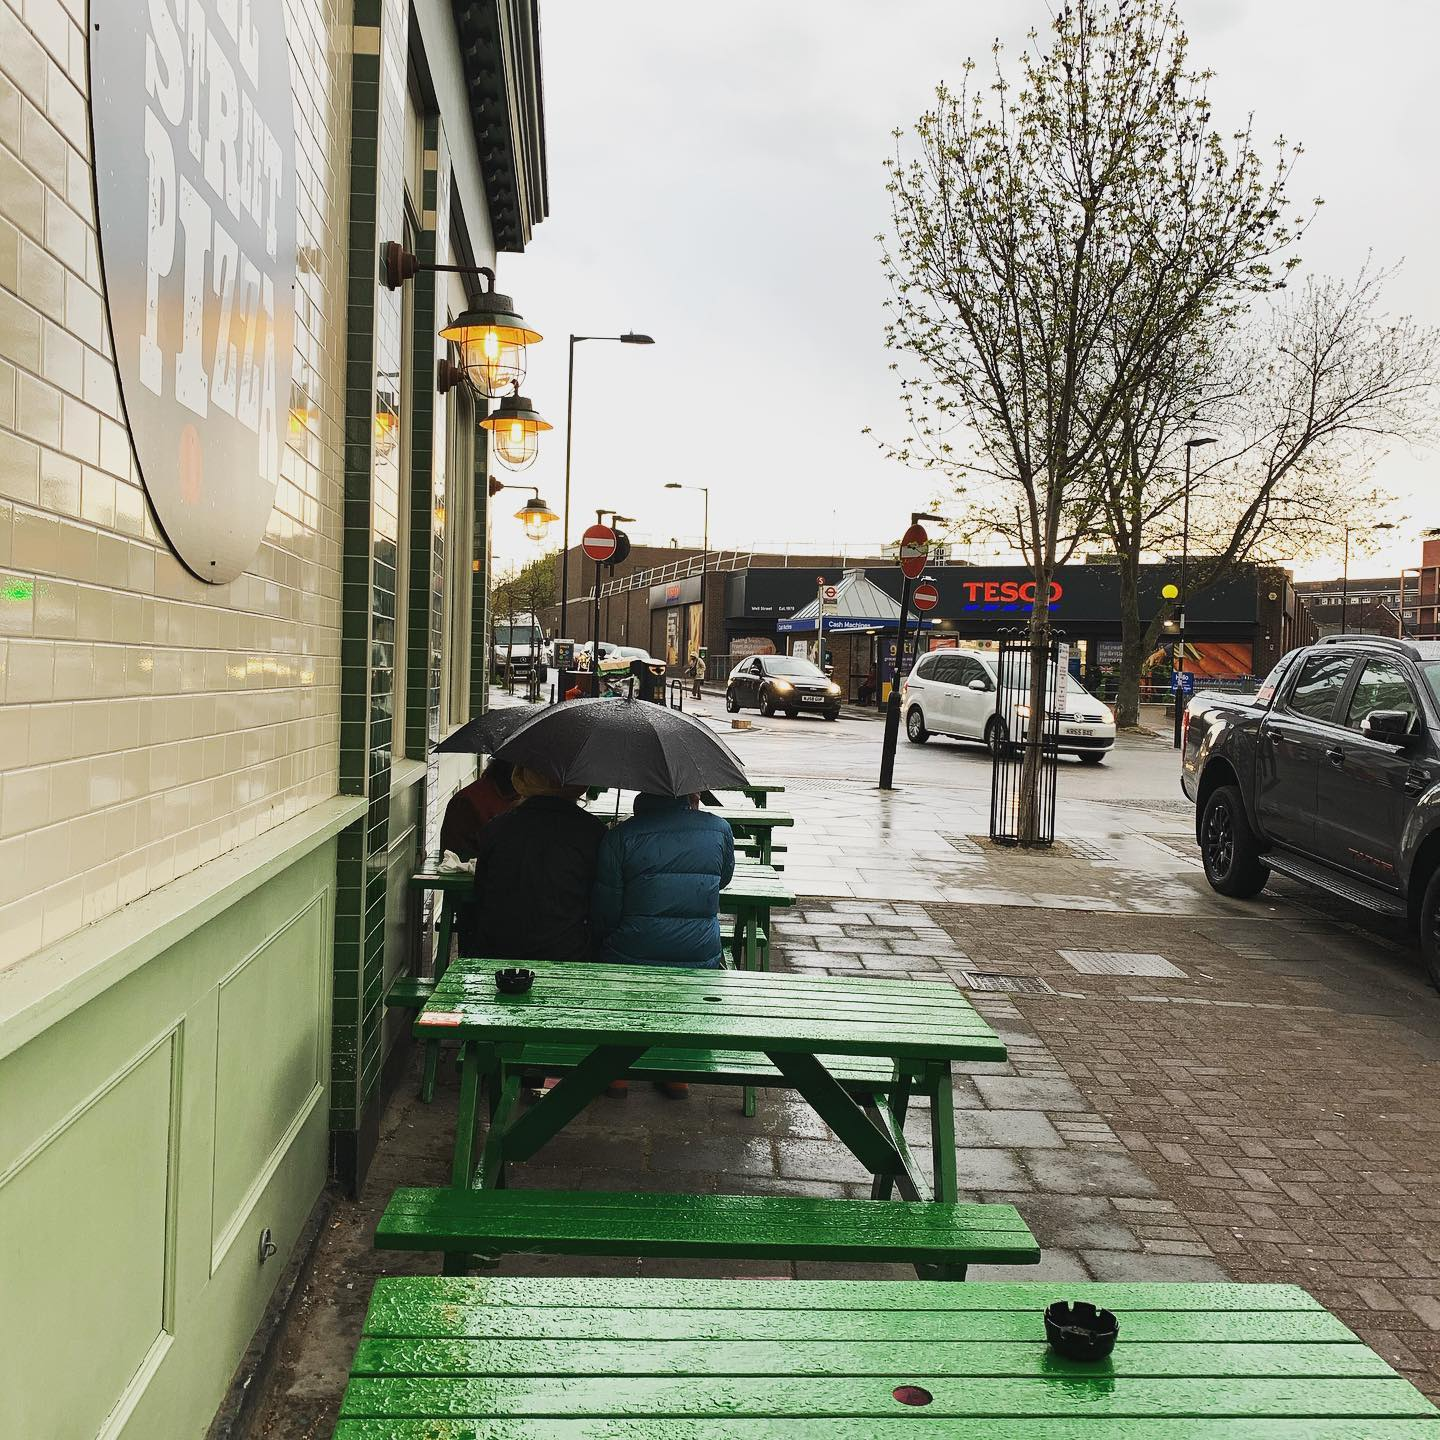 Rain or shine we're here ☔️ if you're not feeling adventurous then you can still enjoy our pizza and cocktails from Deliveroo 🛵 . . . #tgif #pizza #youwantapizzame #hackney #itsrainingitspouring #friyay #delivery #takeaway